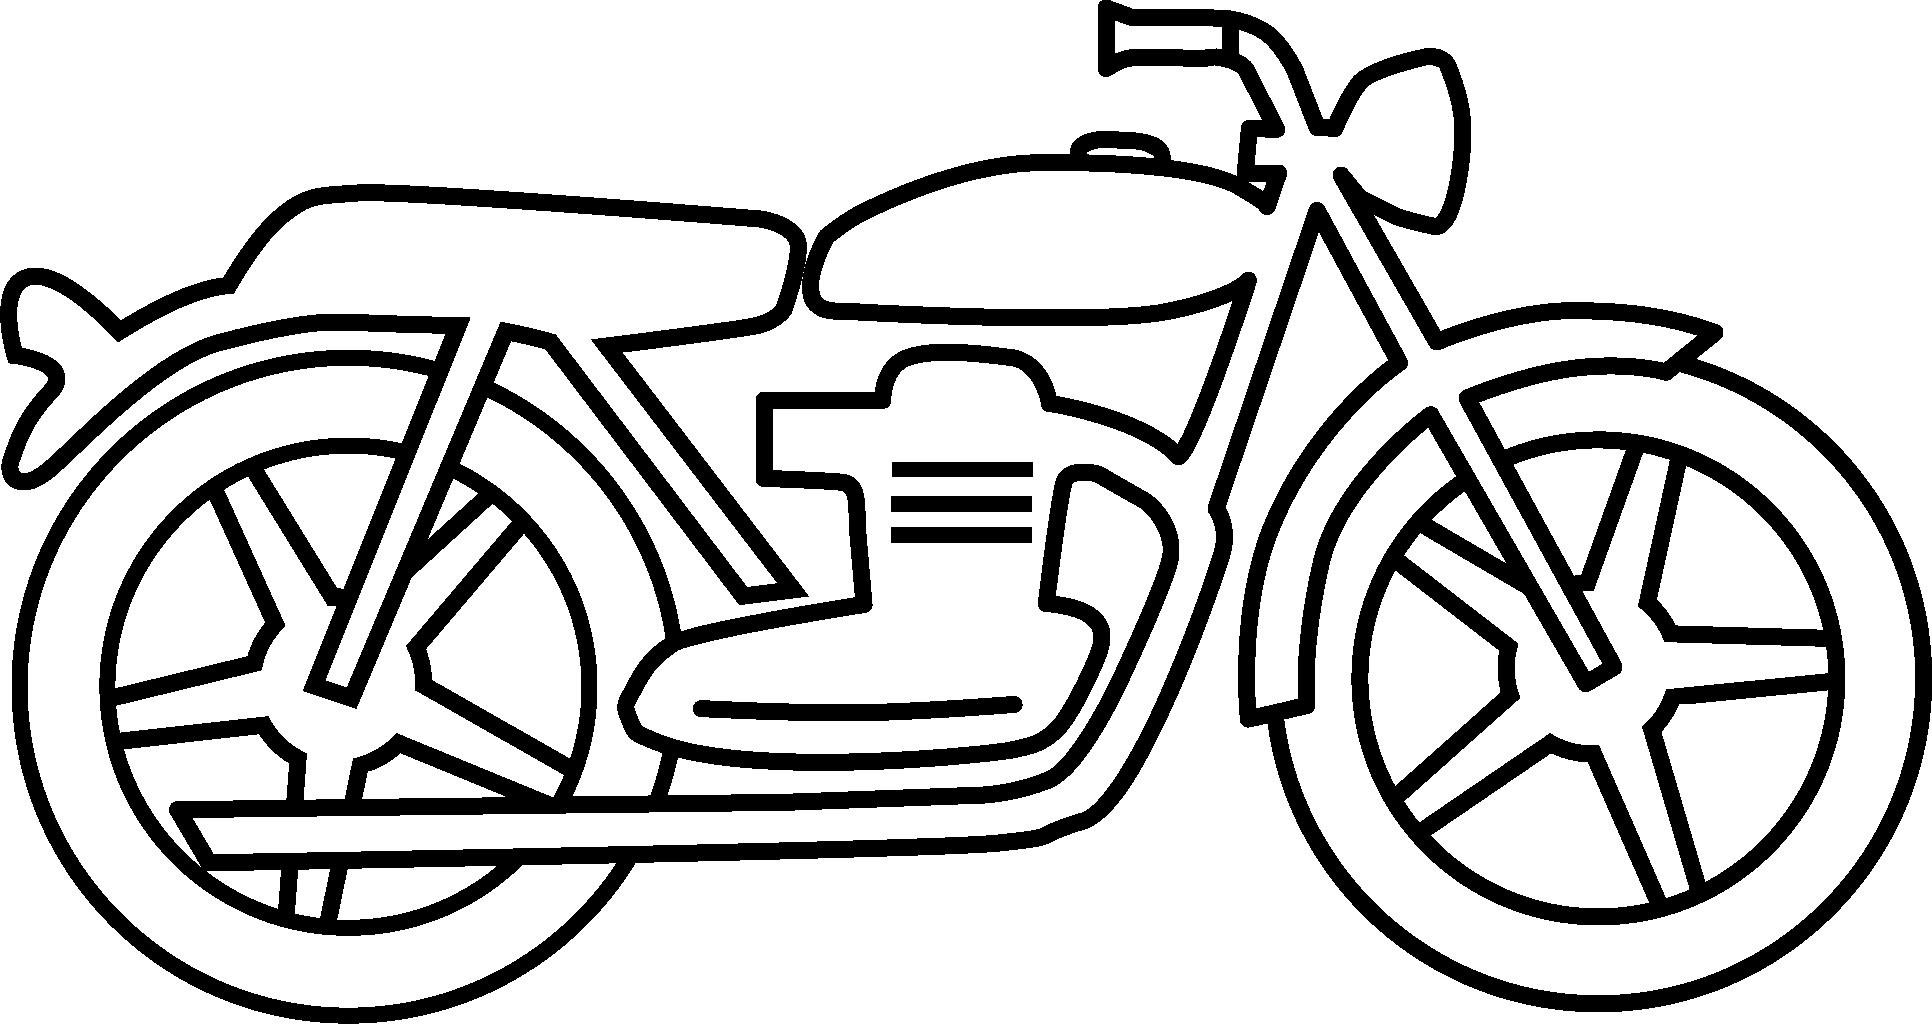 1932x1024 Harley Davidson Logo Vector Free Vector For Free Download (About